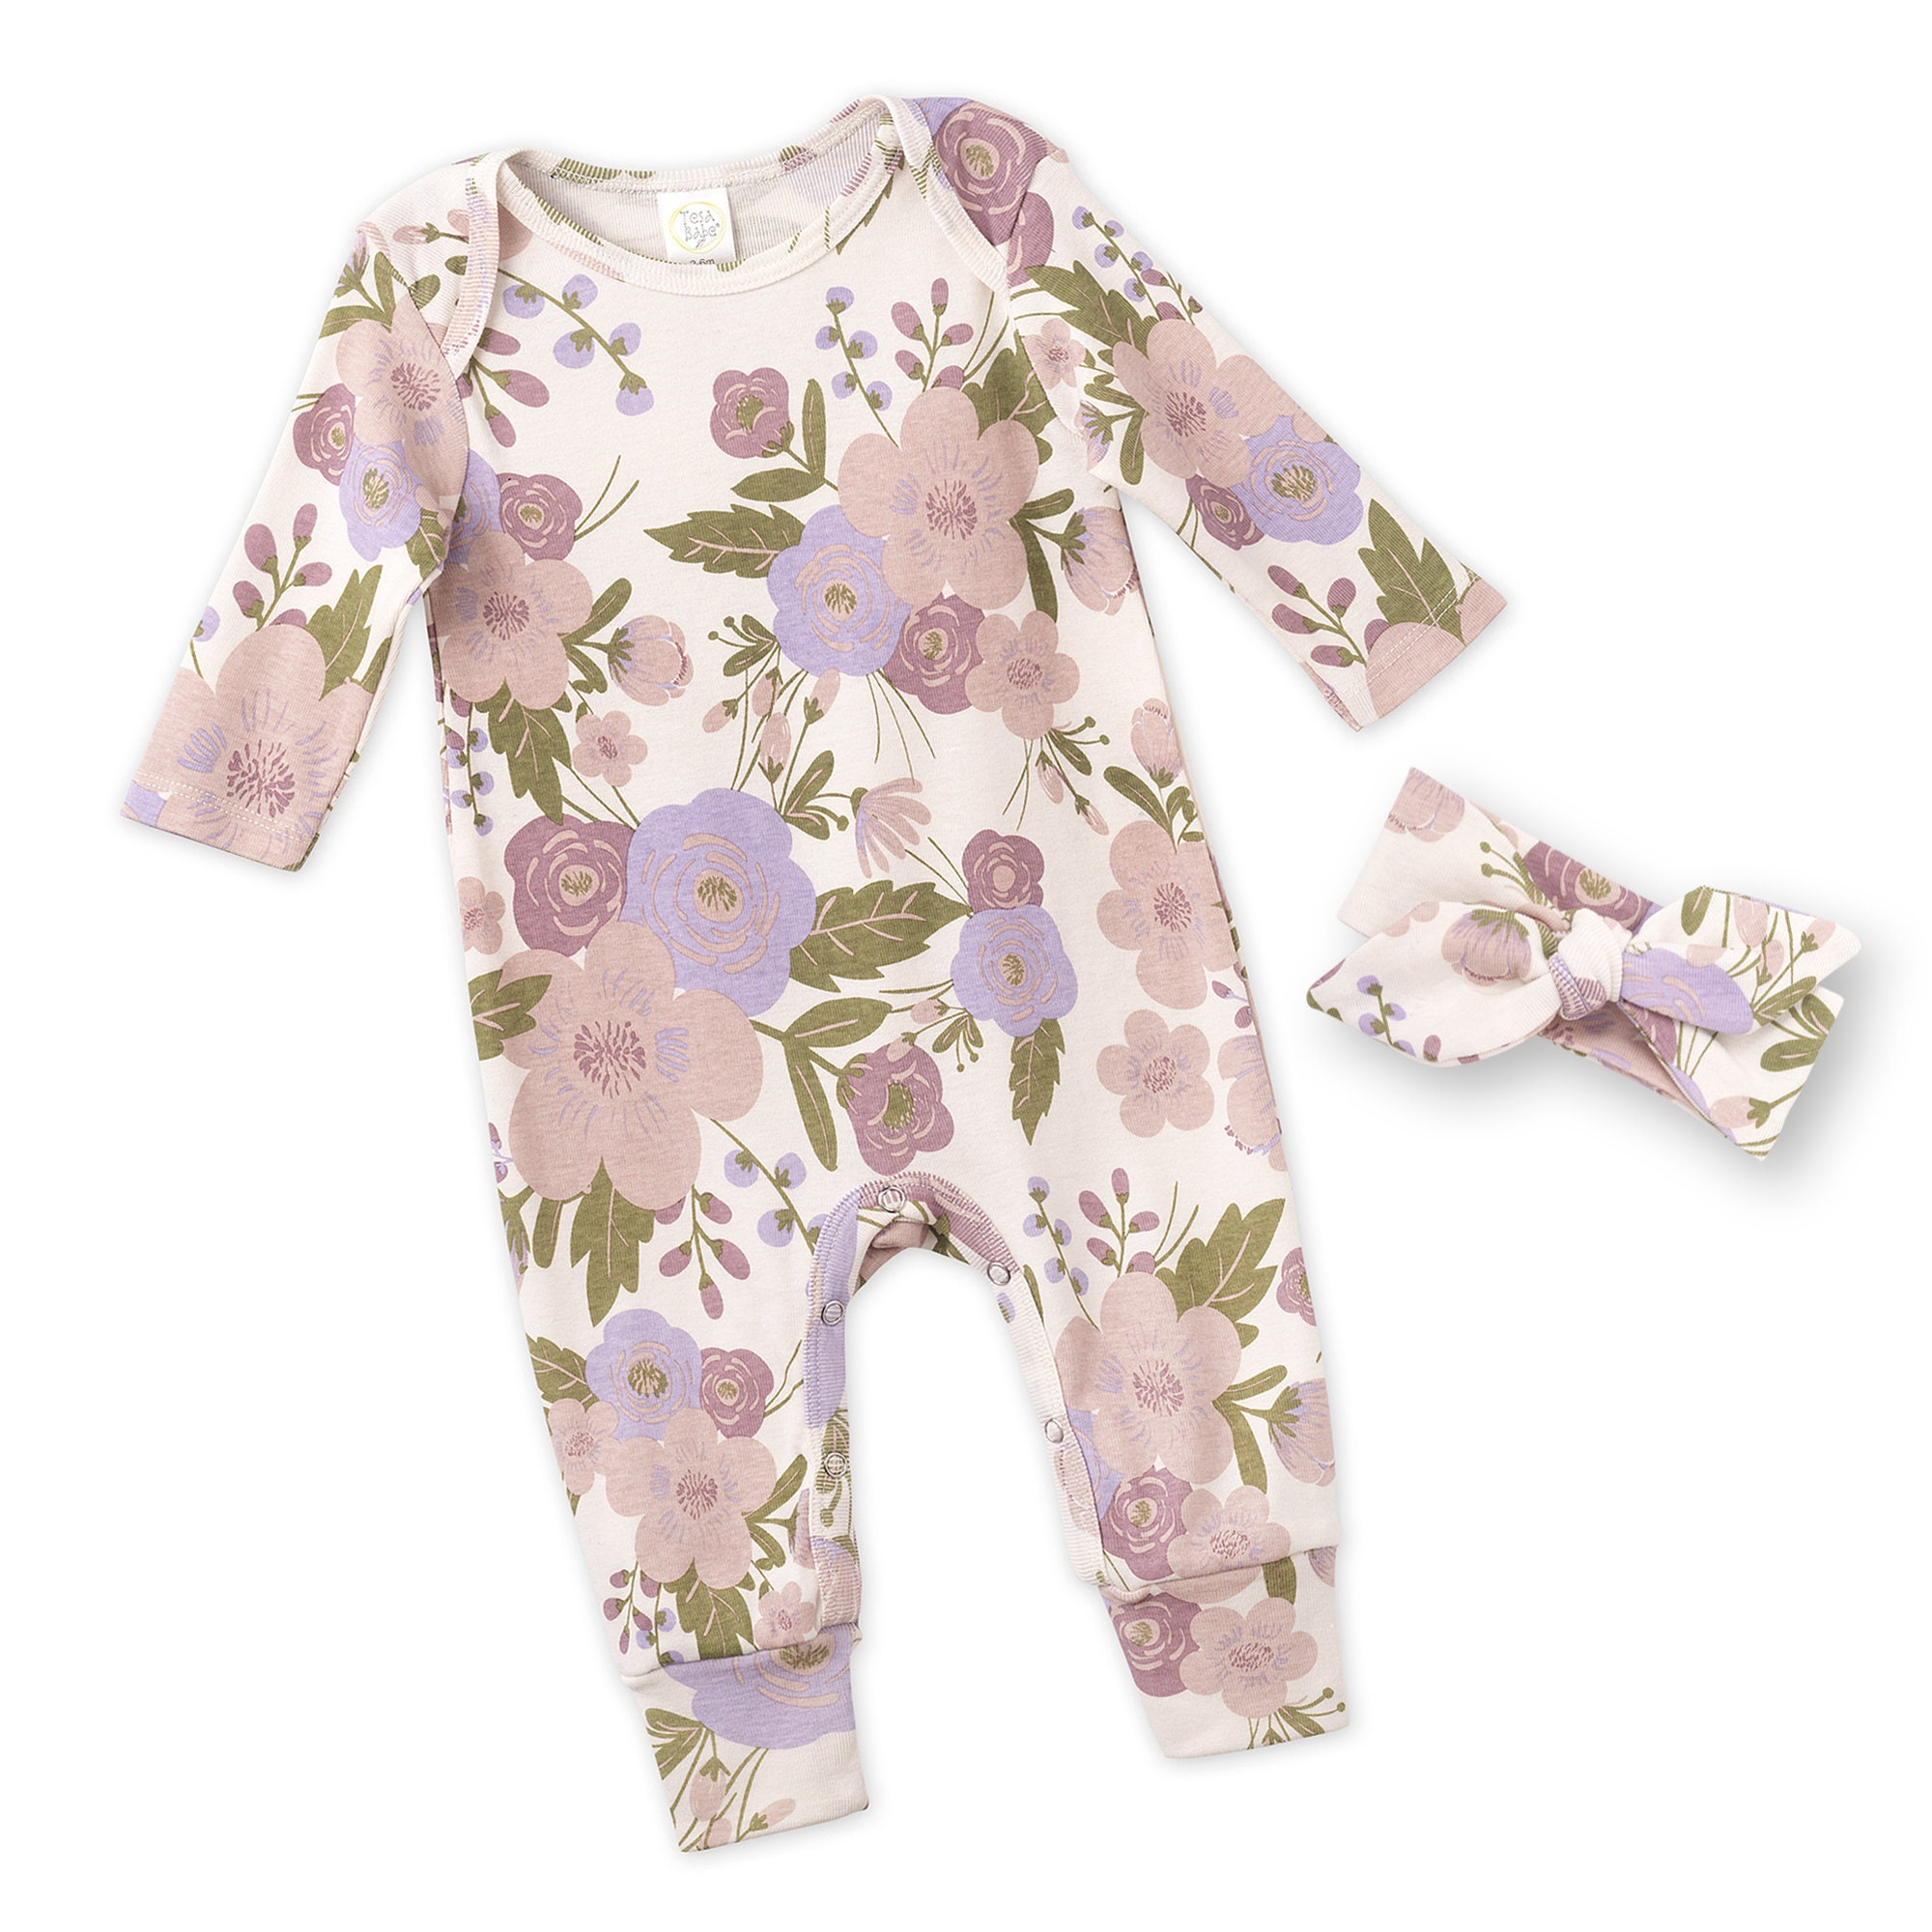 9b528fad8fcc Newborn Baby Girl Coming Home Outfit